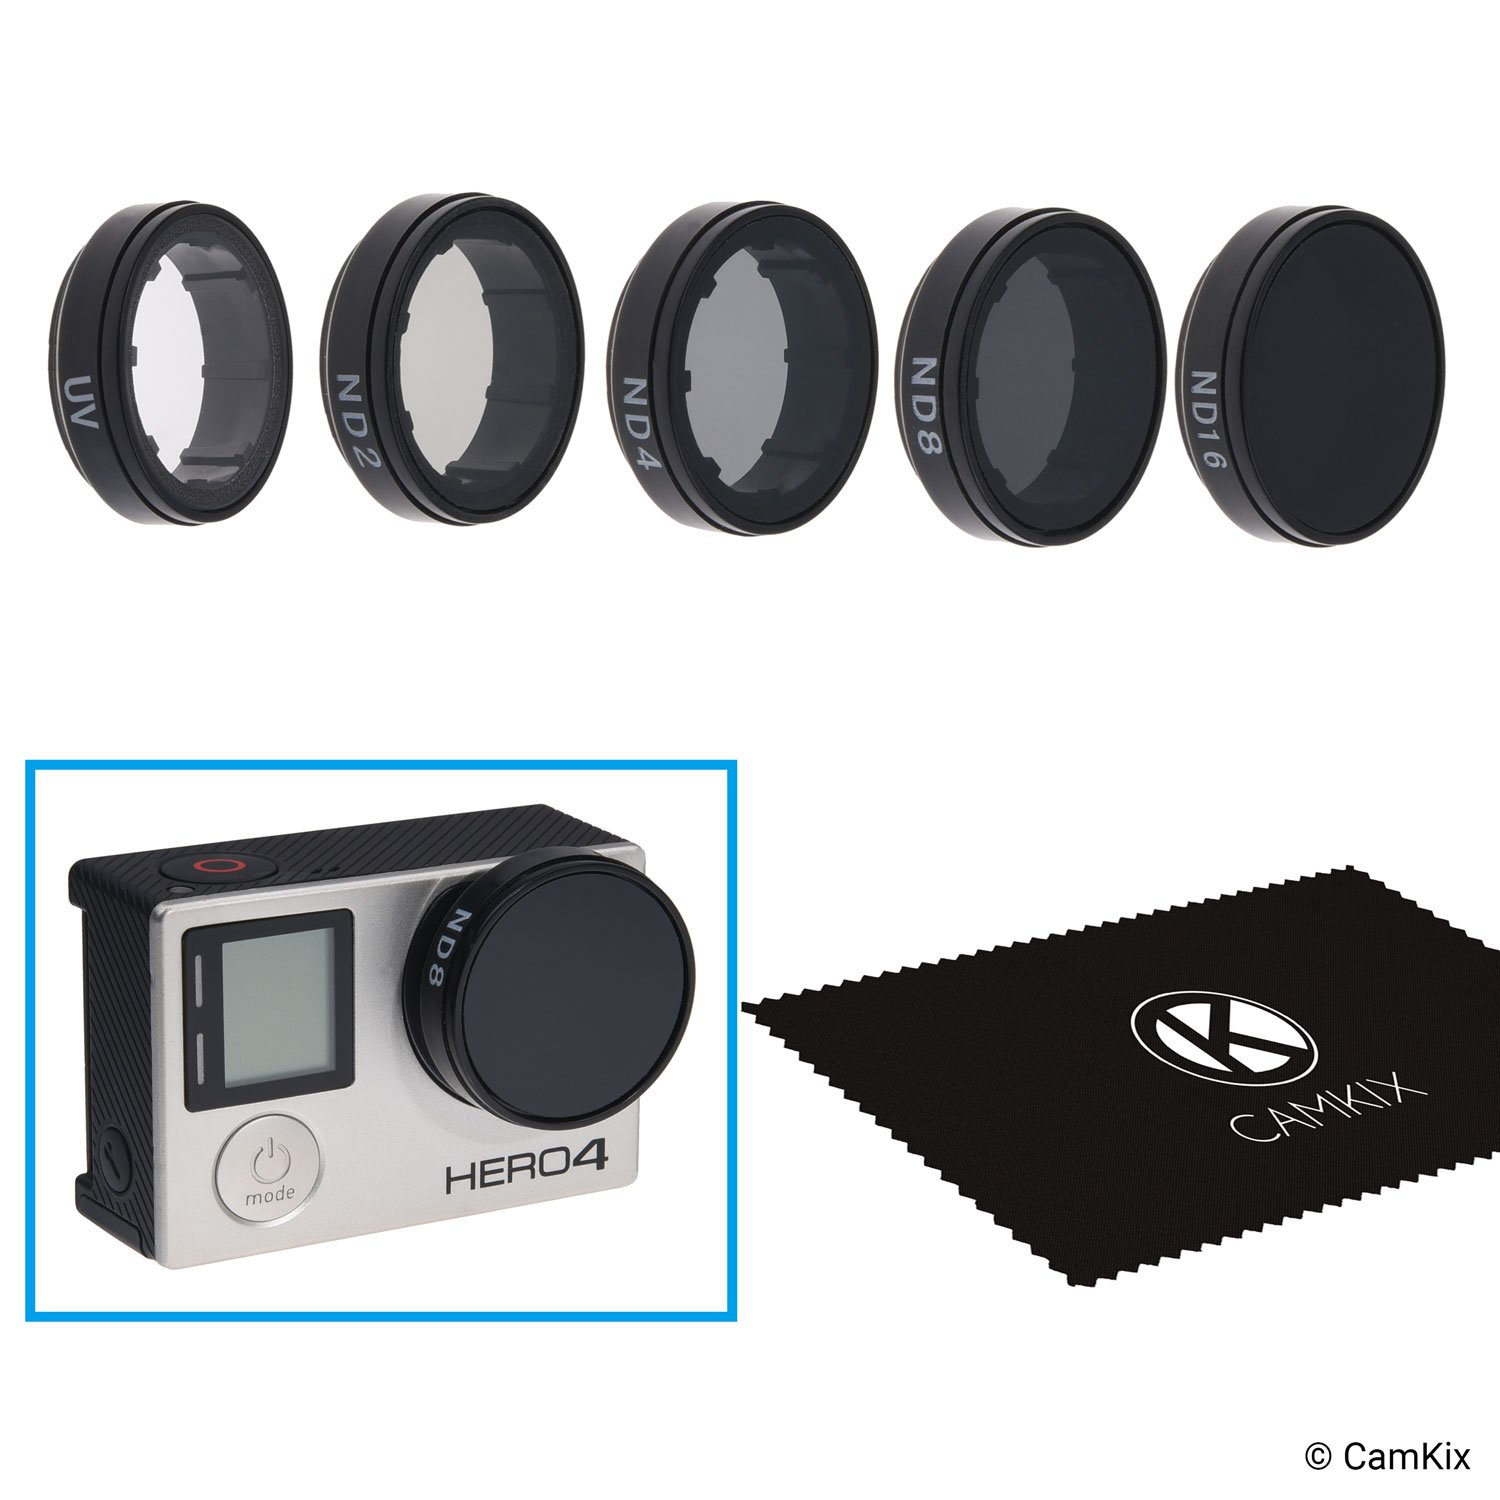 CamKix Cinematic Filter Pack Compatible with GoPro Hero 4 and 3+ Includes 4 Neutral Density Filters (ND2/ND4/ND8/ND16), a UV Filter and a Cleaning Cloth. by CamKix